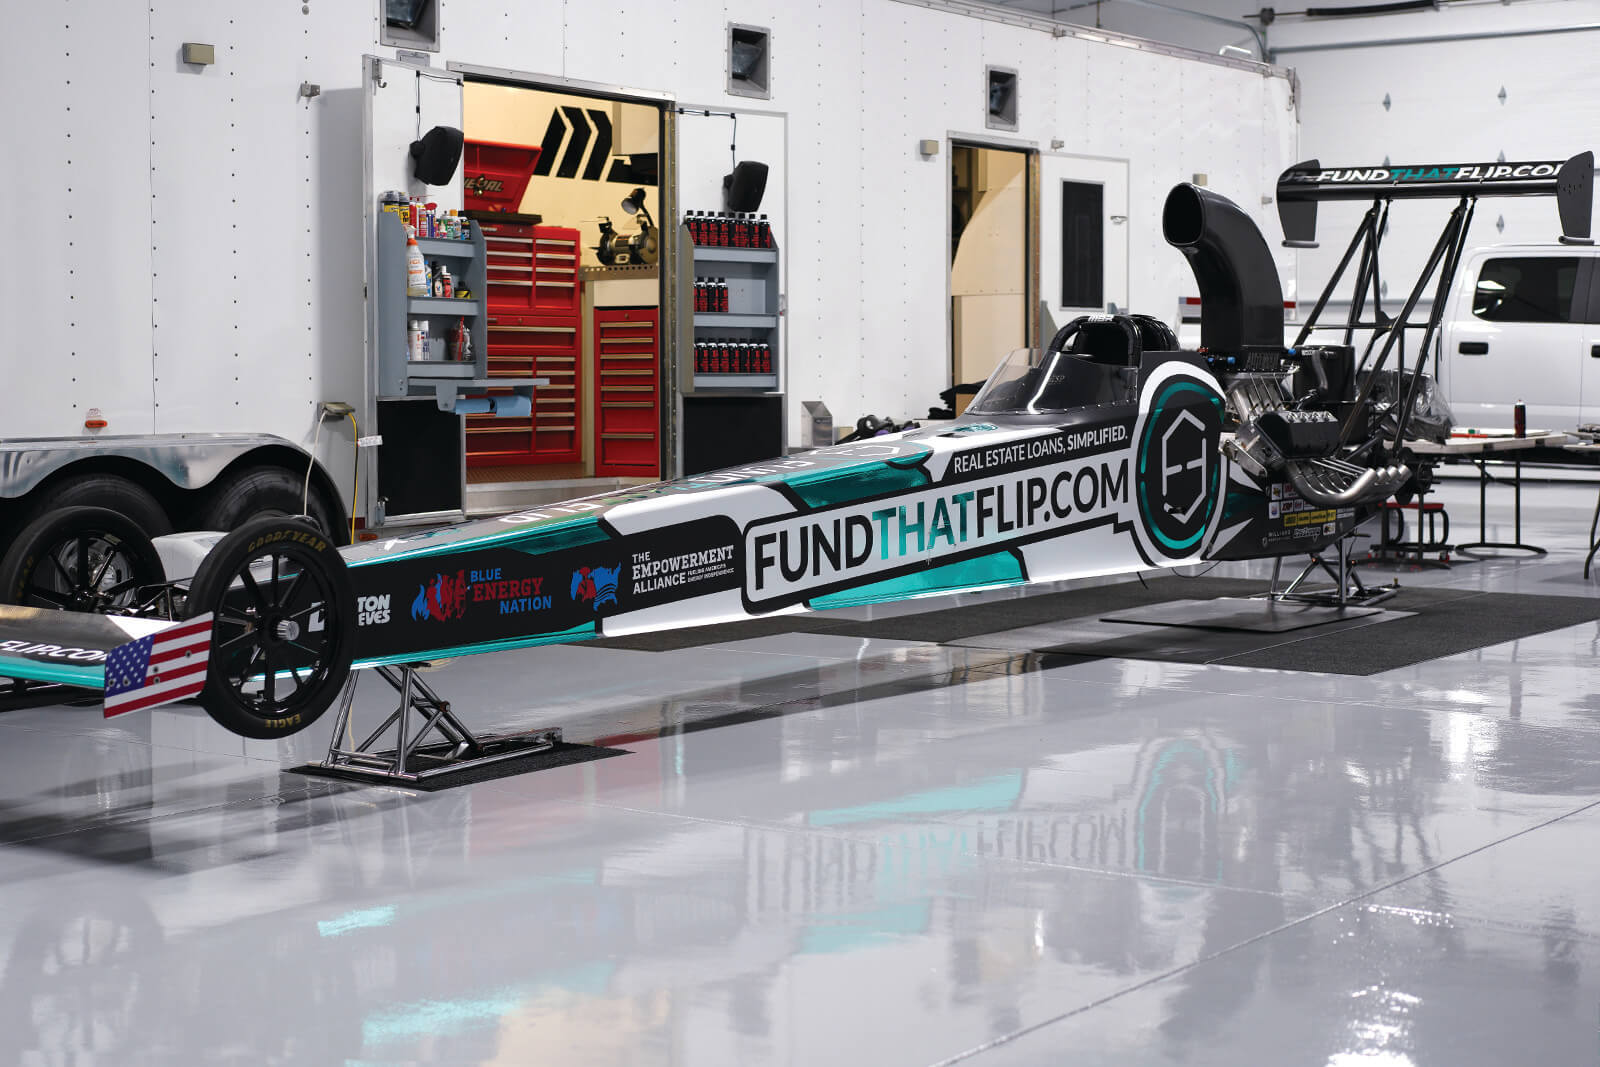 Fund That Flip Enters NHRA Drag Racing as Primary Sponsor of Michalek Brothers Racing